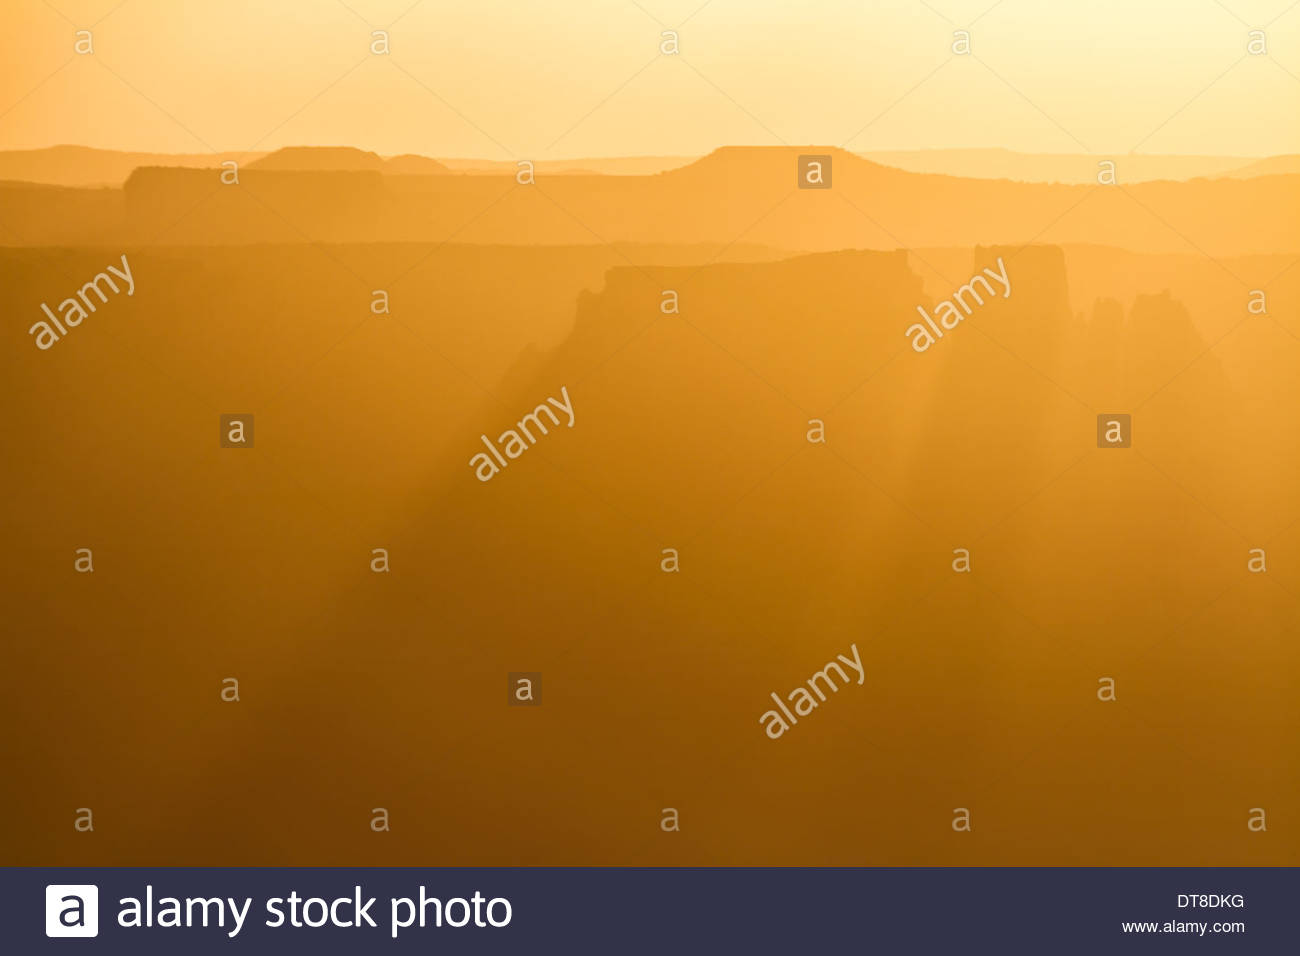 Distant Buttes, Canyonlands National Park, Utah, USA - Stock Image